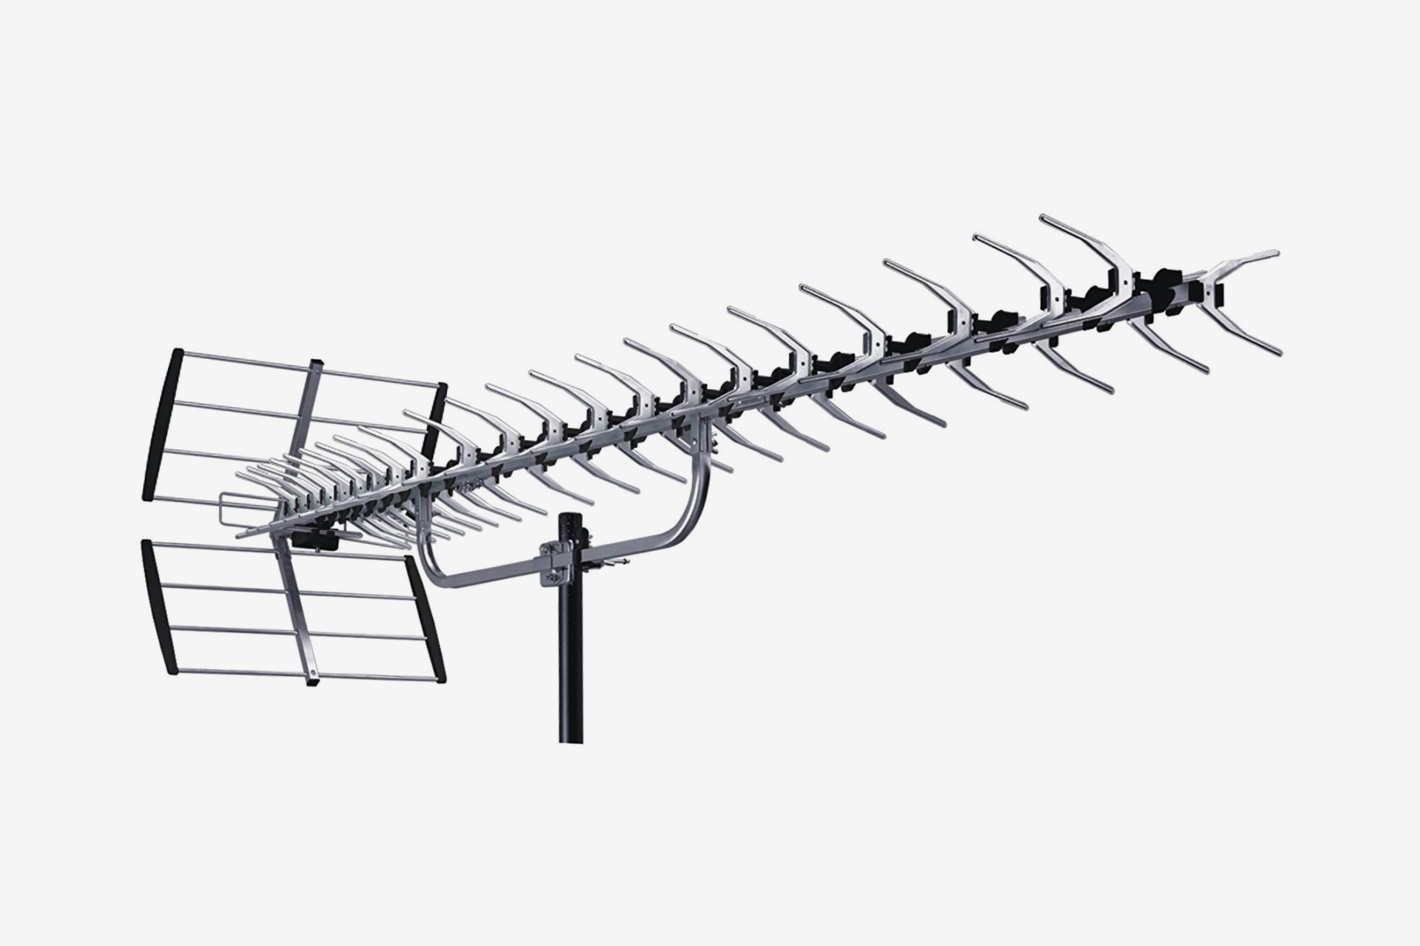 The Best Outdoor Tv Antennas On Amazon According To Hyperenthusiastic Reviewers Outdoor Tv Antenna Best Outdoor Tv Antenna Tv Antenna